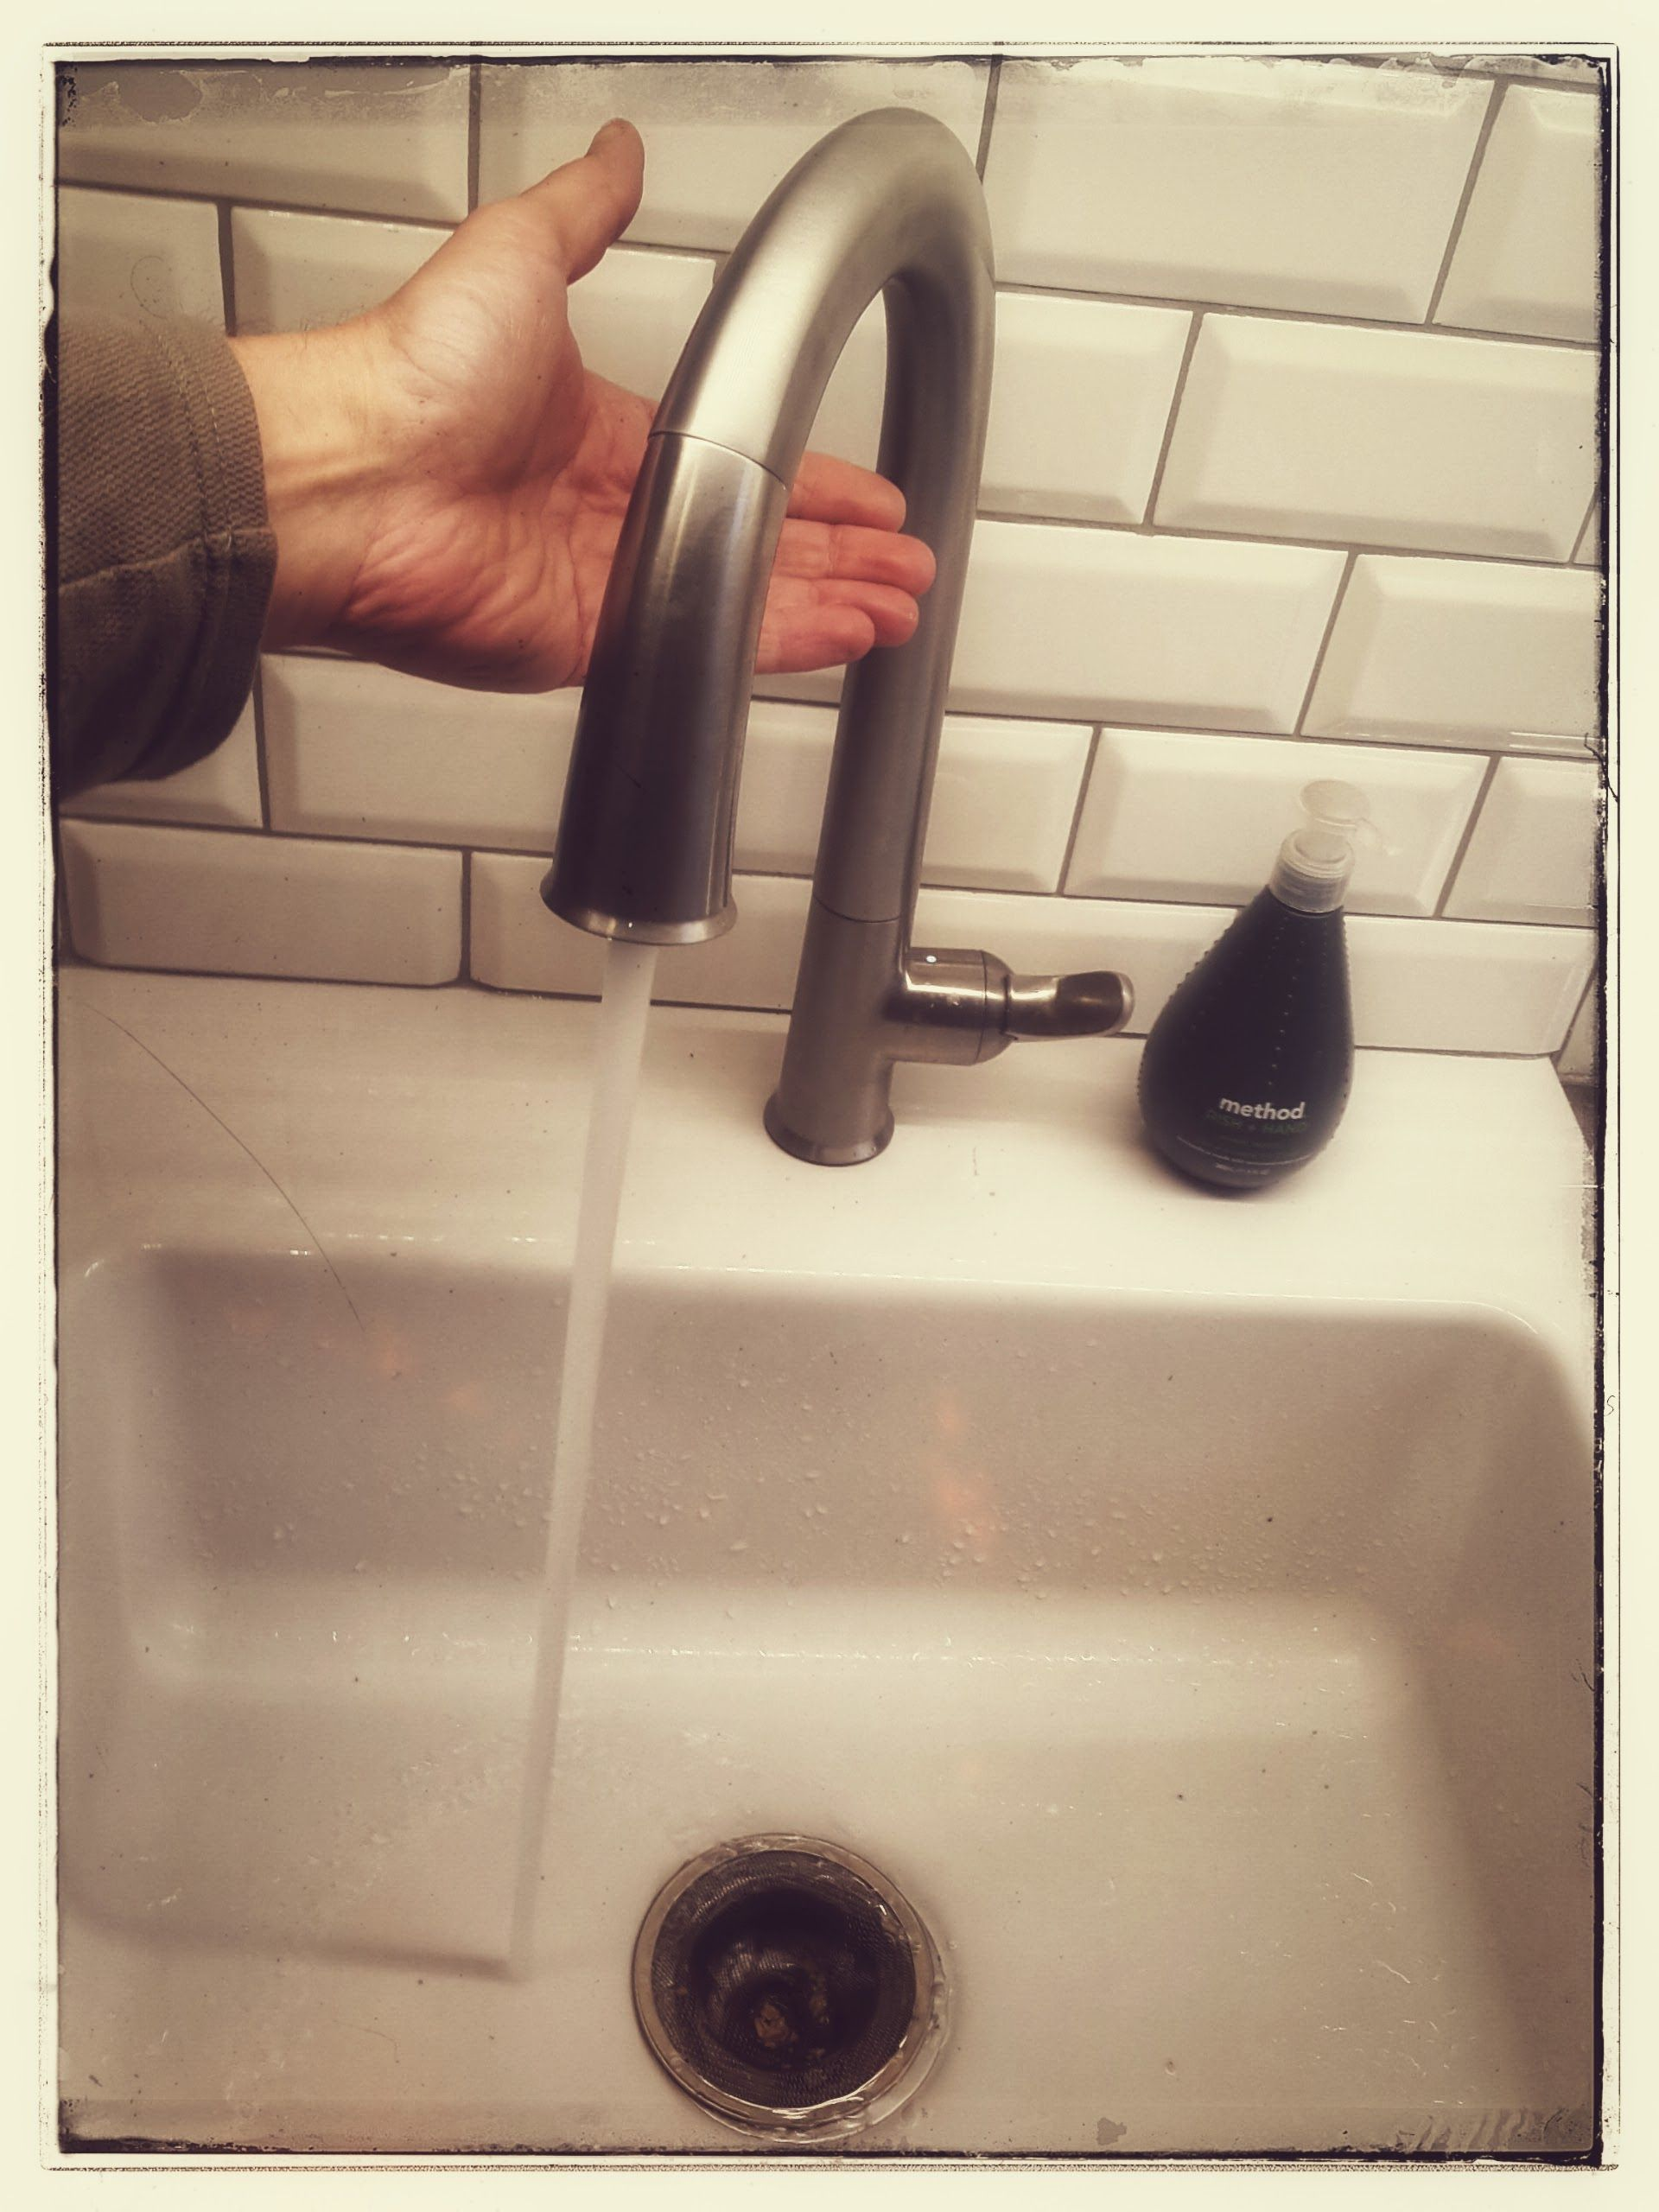 Kohler Sensate Touchless Faucet In Our Newly Renovated Kitchen Kick